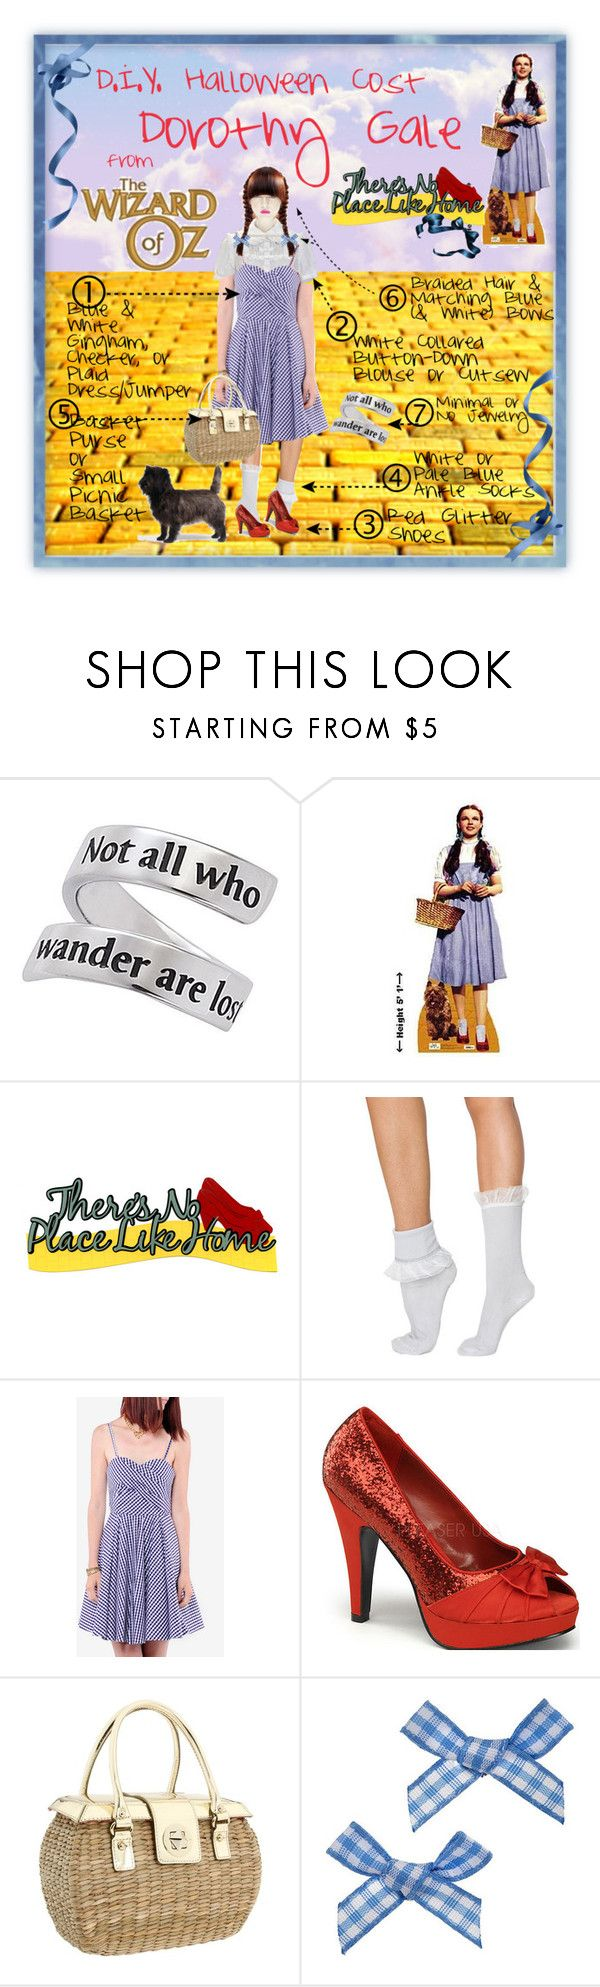 """""""D.I.Y. Halloween Costume: Dorothy (Wizard of Oz)"""" by mysticrose29 ❤ liked on Polyvore featuring Luna, Natures Jewelry, Warehouse, American Apparel, Paul & Joe Sister, Kate Spade, Miss Selfridge, plaid, gingham dress and red glitter shoes"""